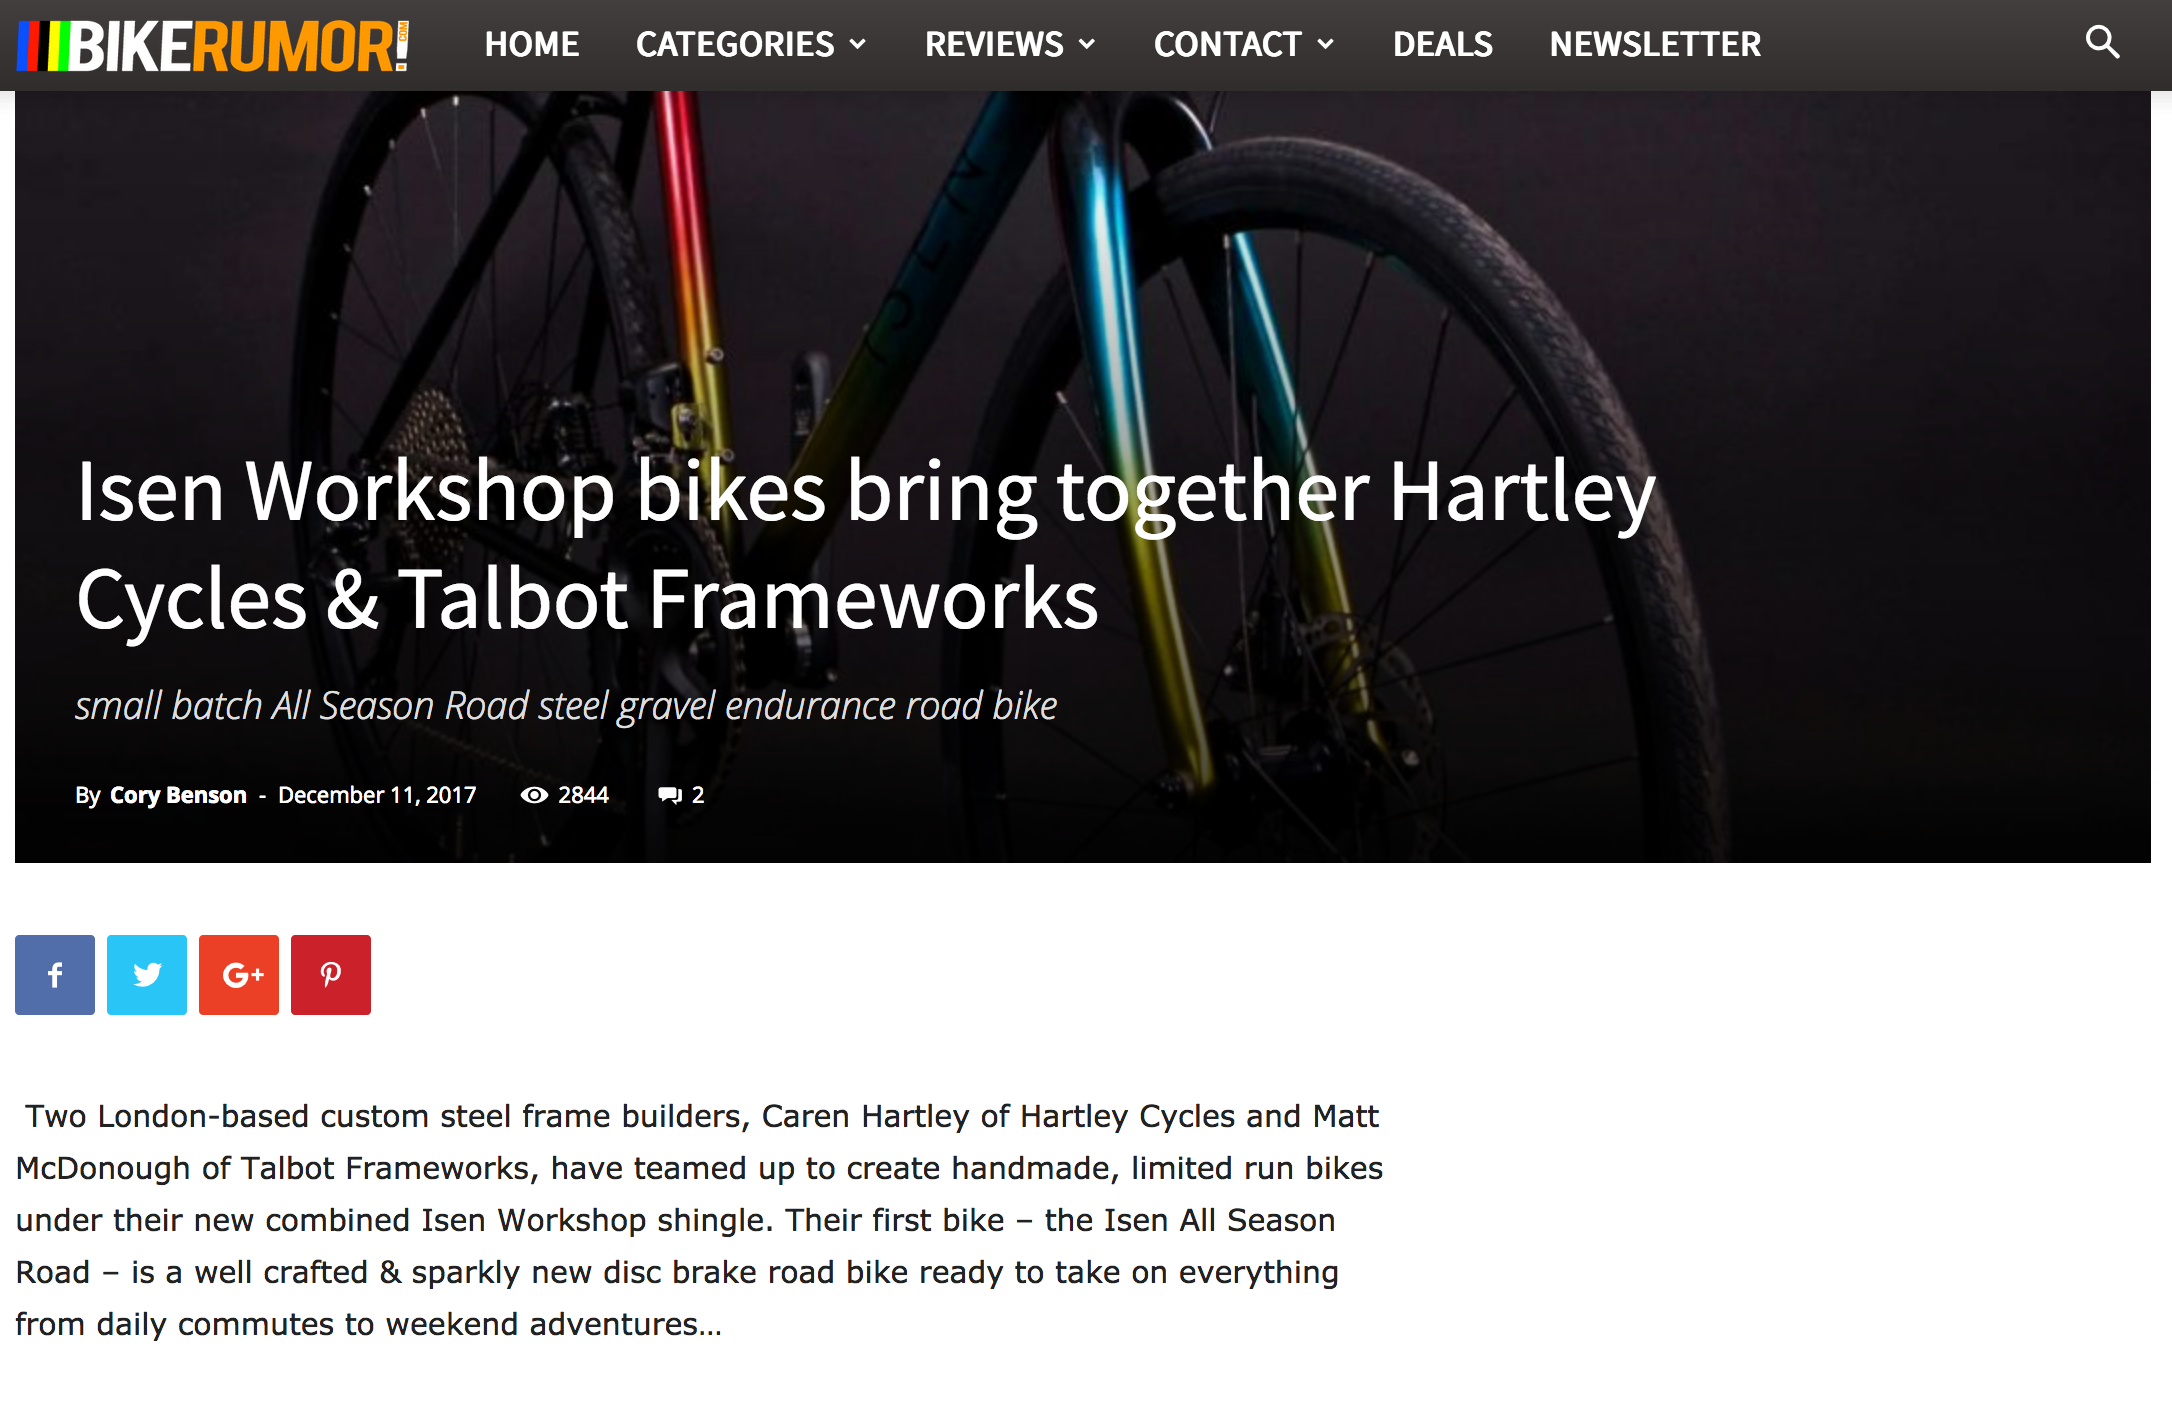 Bike Rumour   Isen Workshop Brings Together Hartley Cycles & Talbot Frameworks